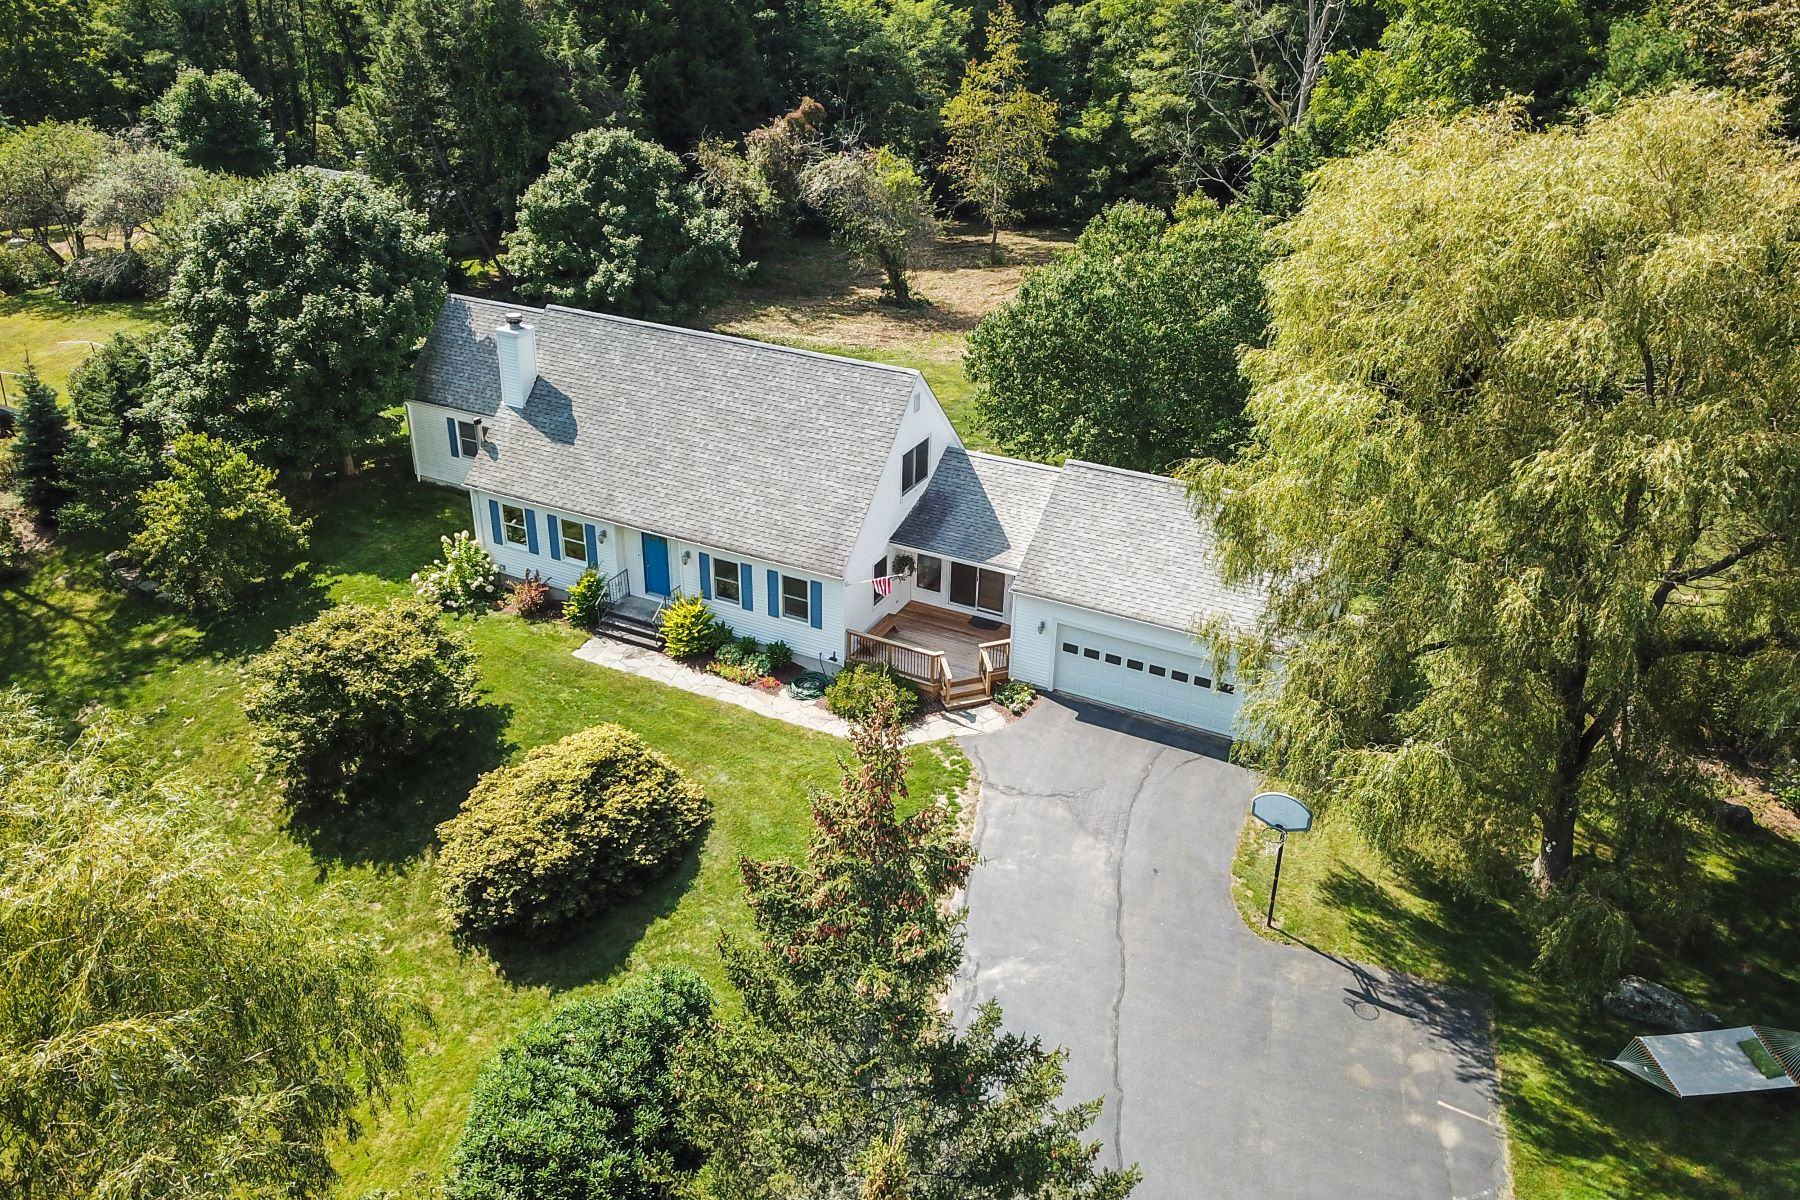 Single Family Homes for Sale at 61a Eno Hill Road Colebrook, Connecticut 06021 United States